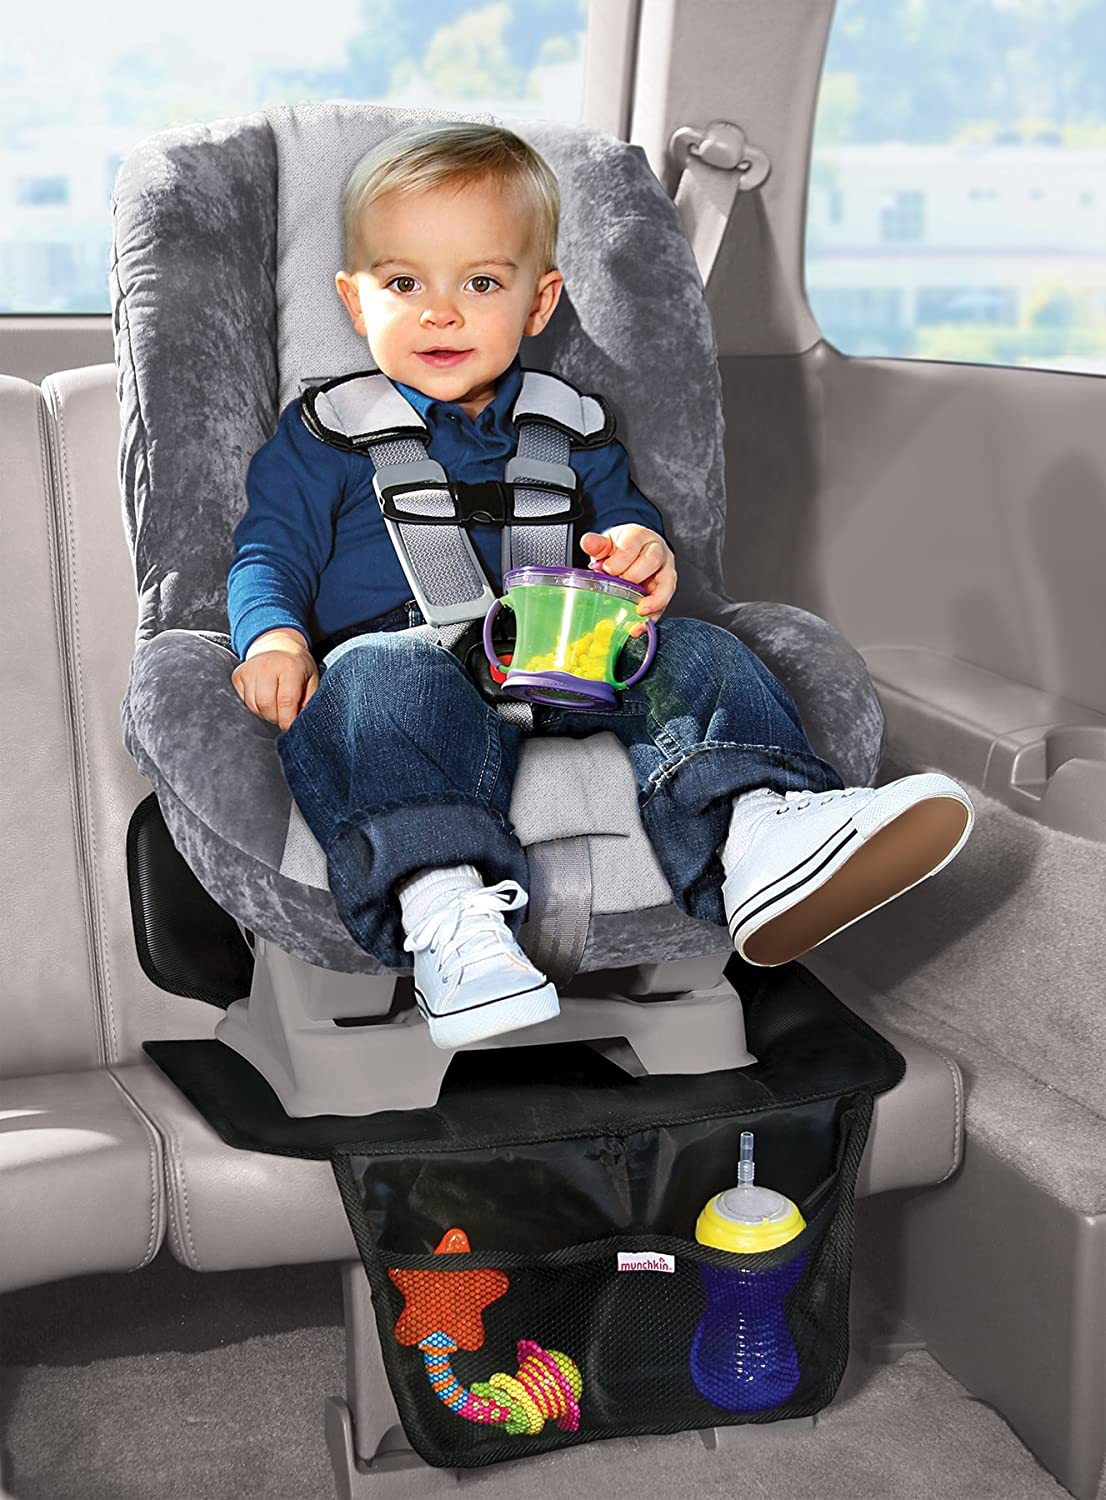 Amazon Munchkin Auto Seat Protector 2 Pack Child Safety Car Accessories Baby